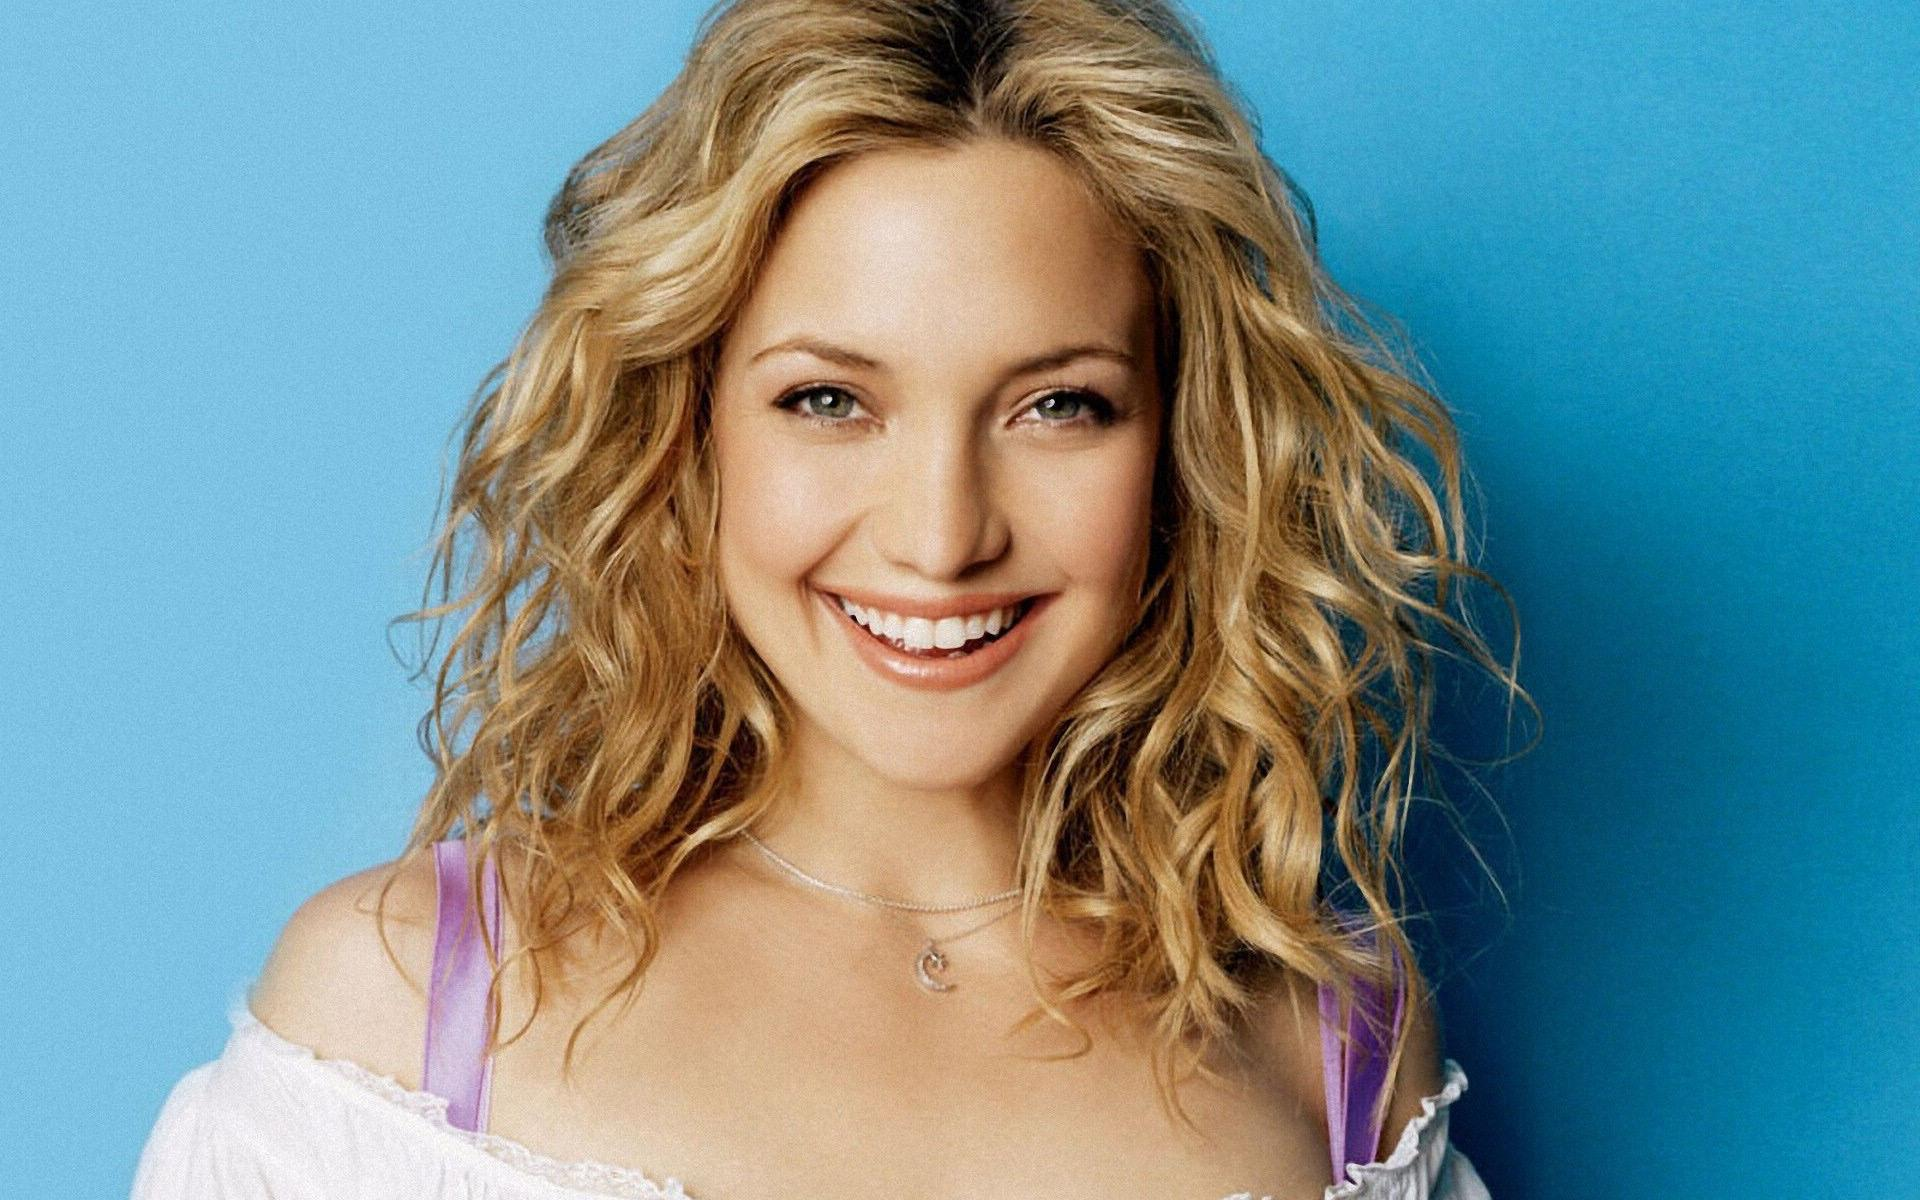 Kate Hudson Wallpapers High Resolution and Quality Download Kate Hudson